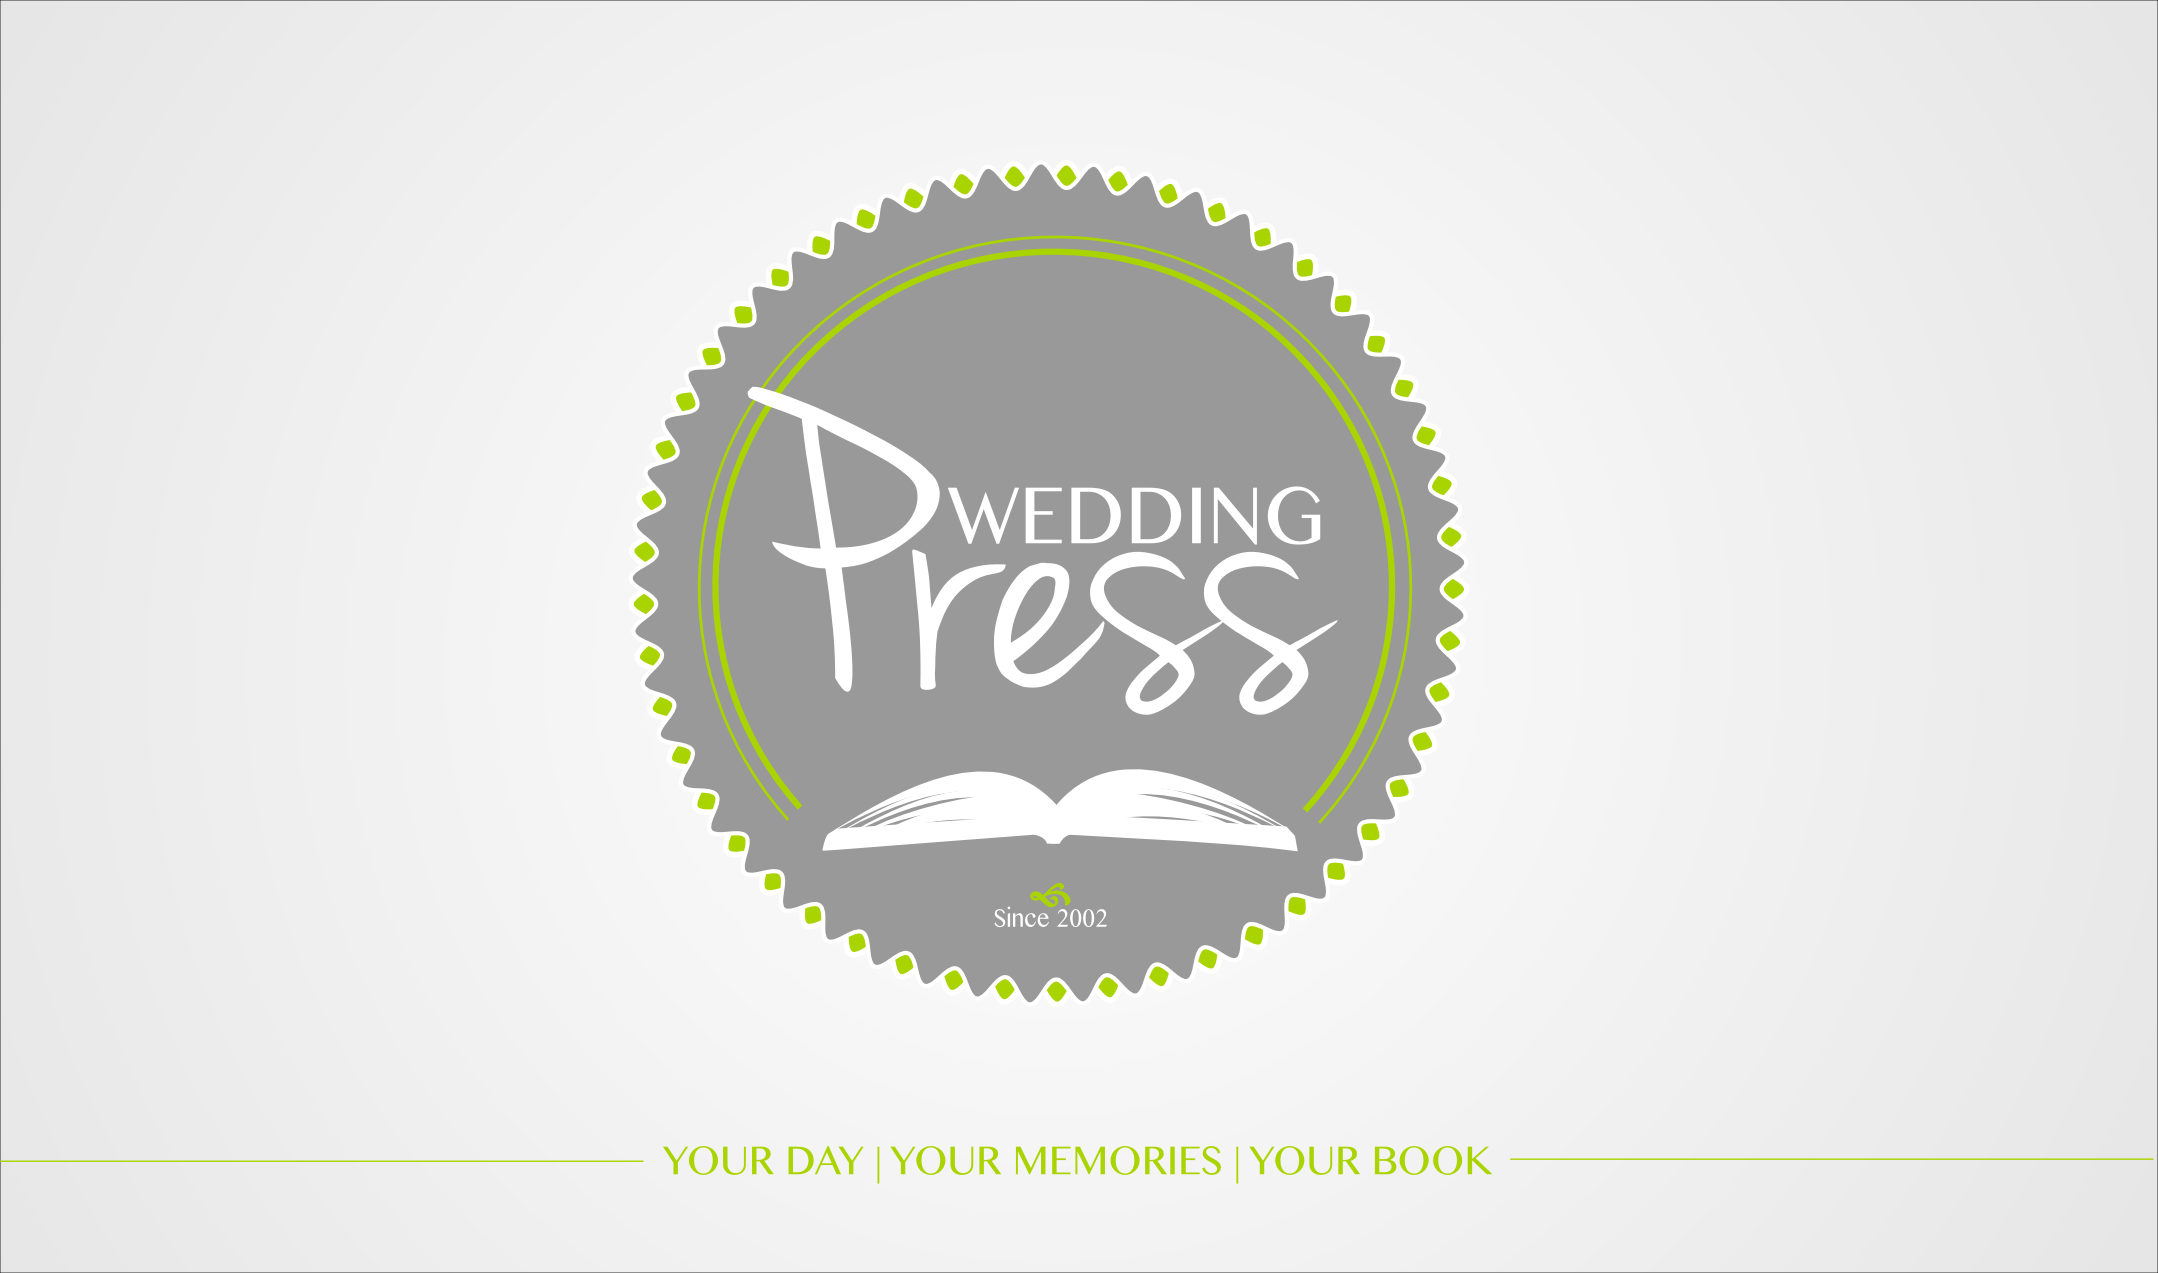 Logo Design by Andrew Bertram - Entry No. 50 in the Logo Design Contest Wedding Writes Logo Design.